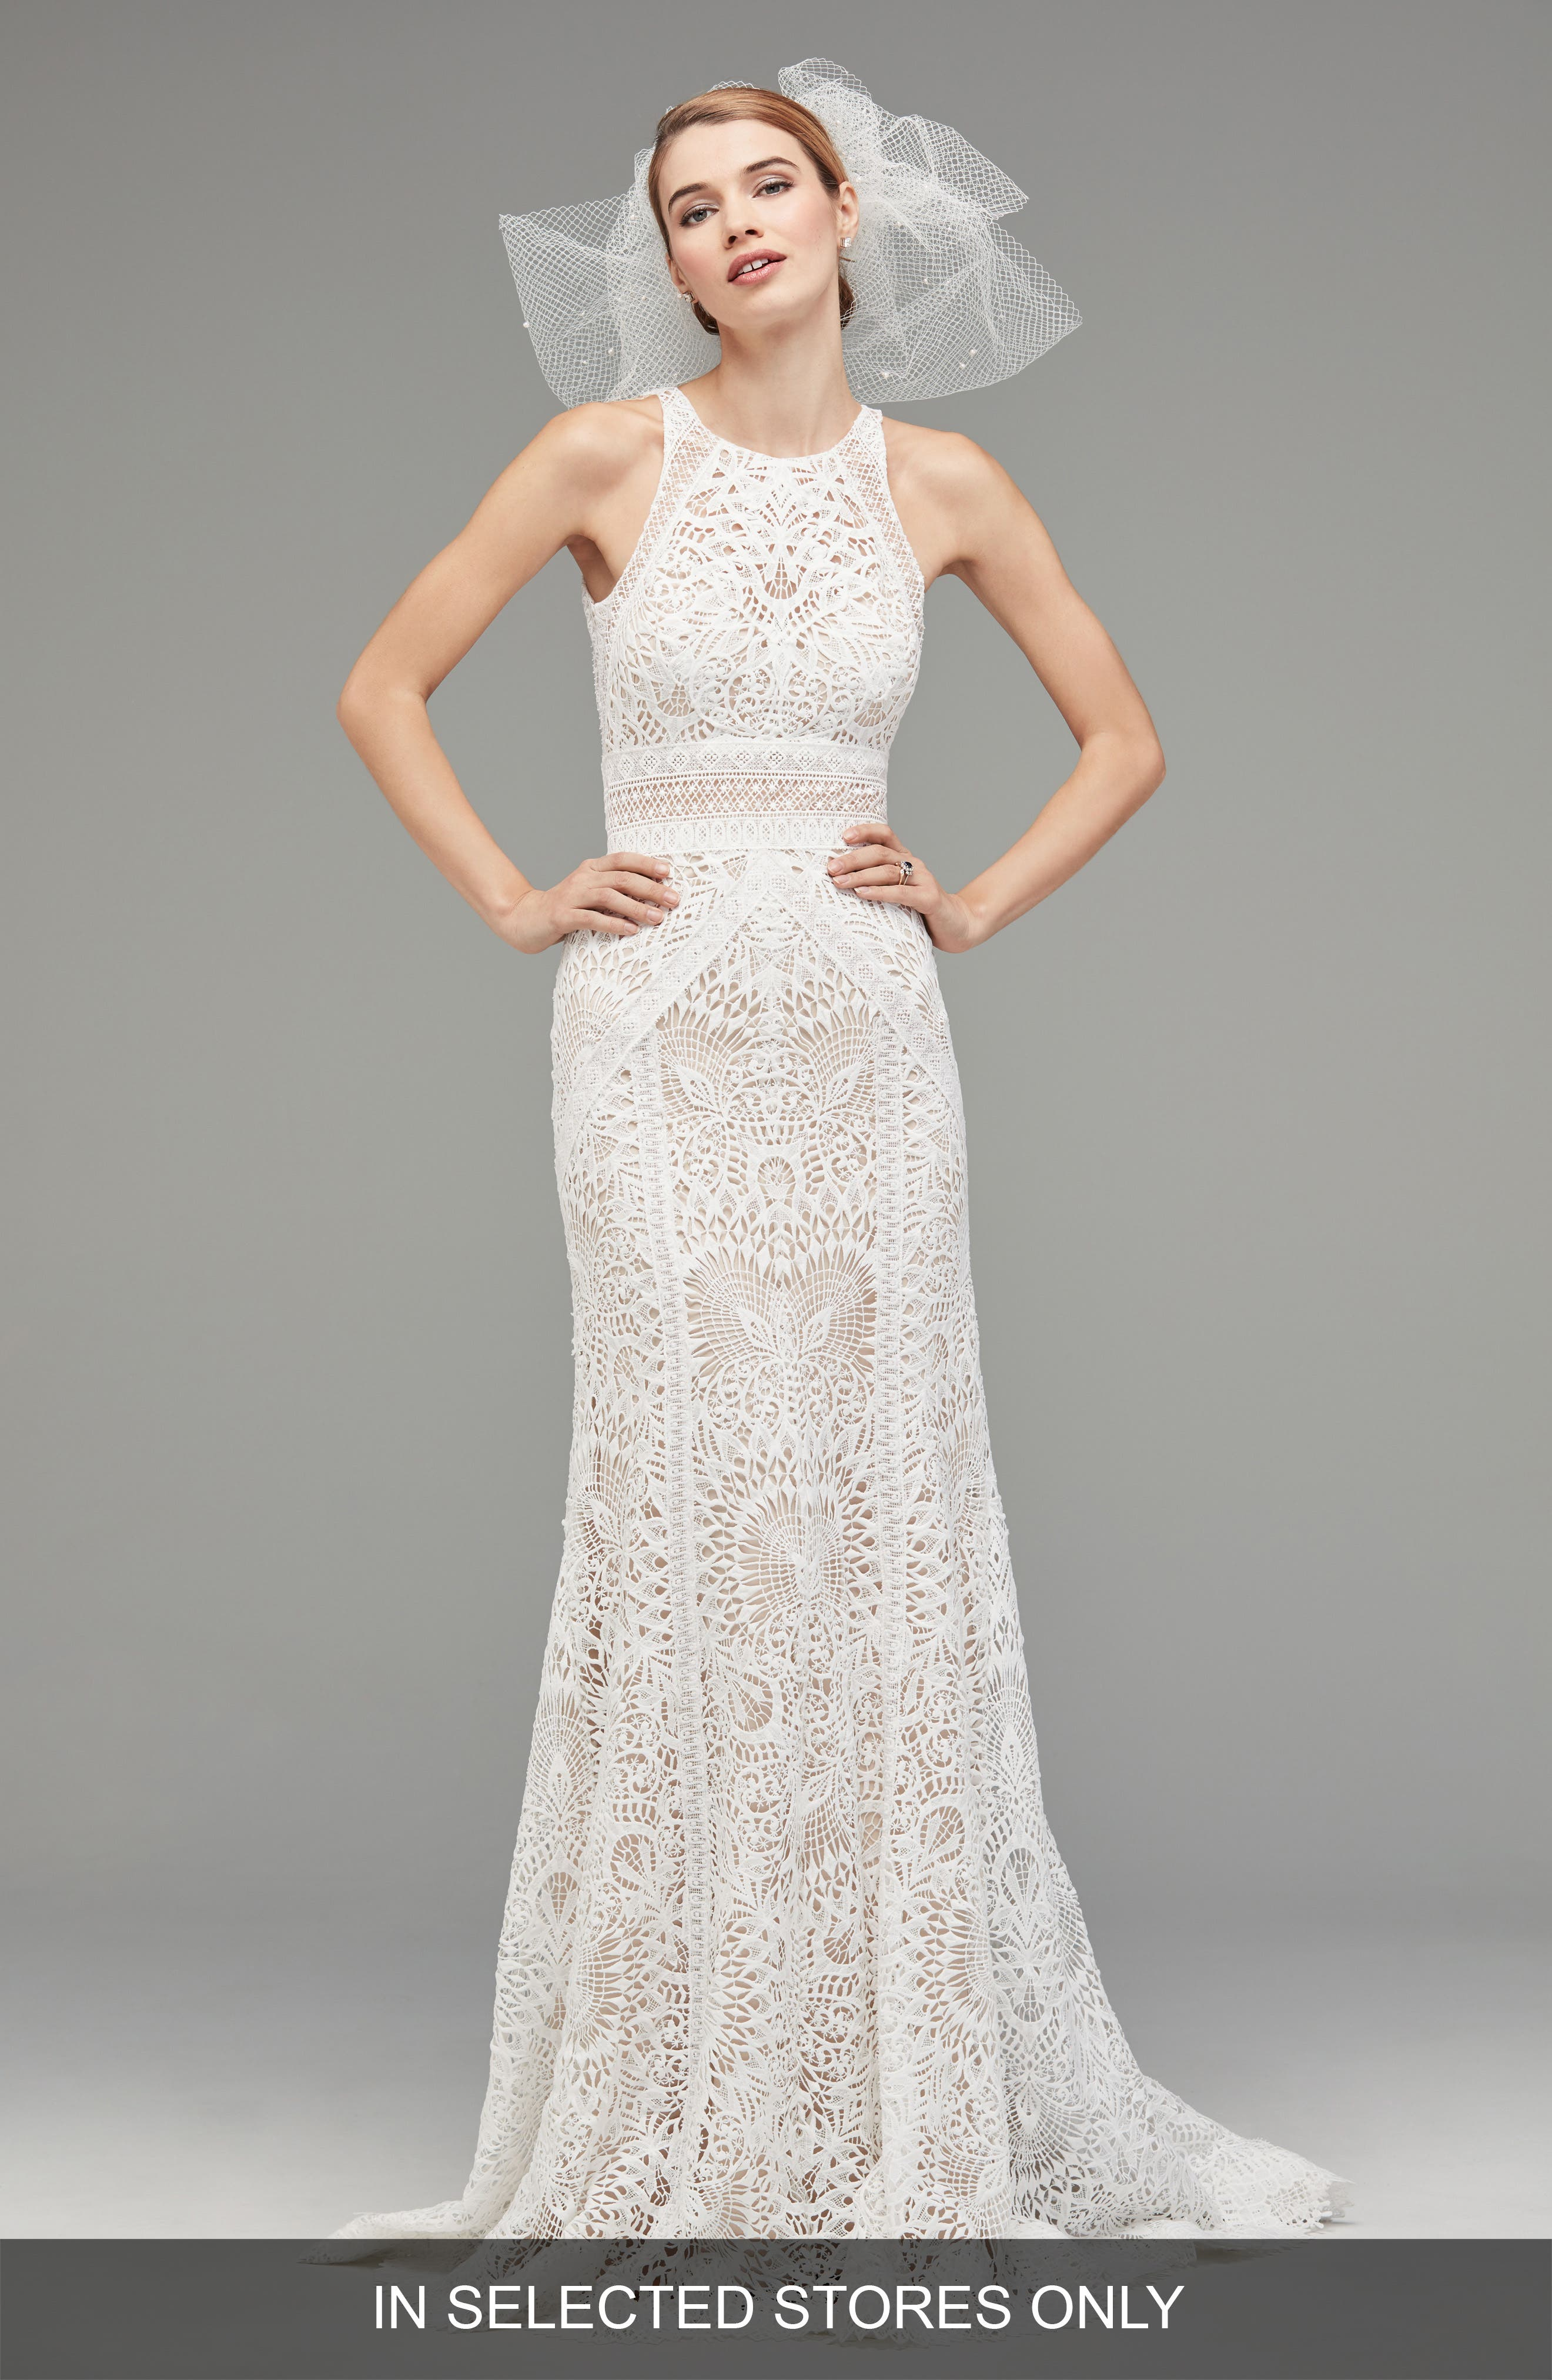 Alternate Image 1 Selected - Watters Vendela Sleeveless Empire Waist Lace Gown